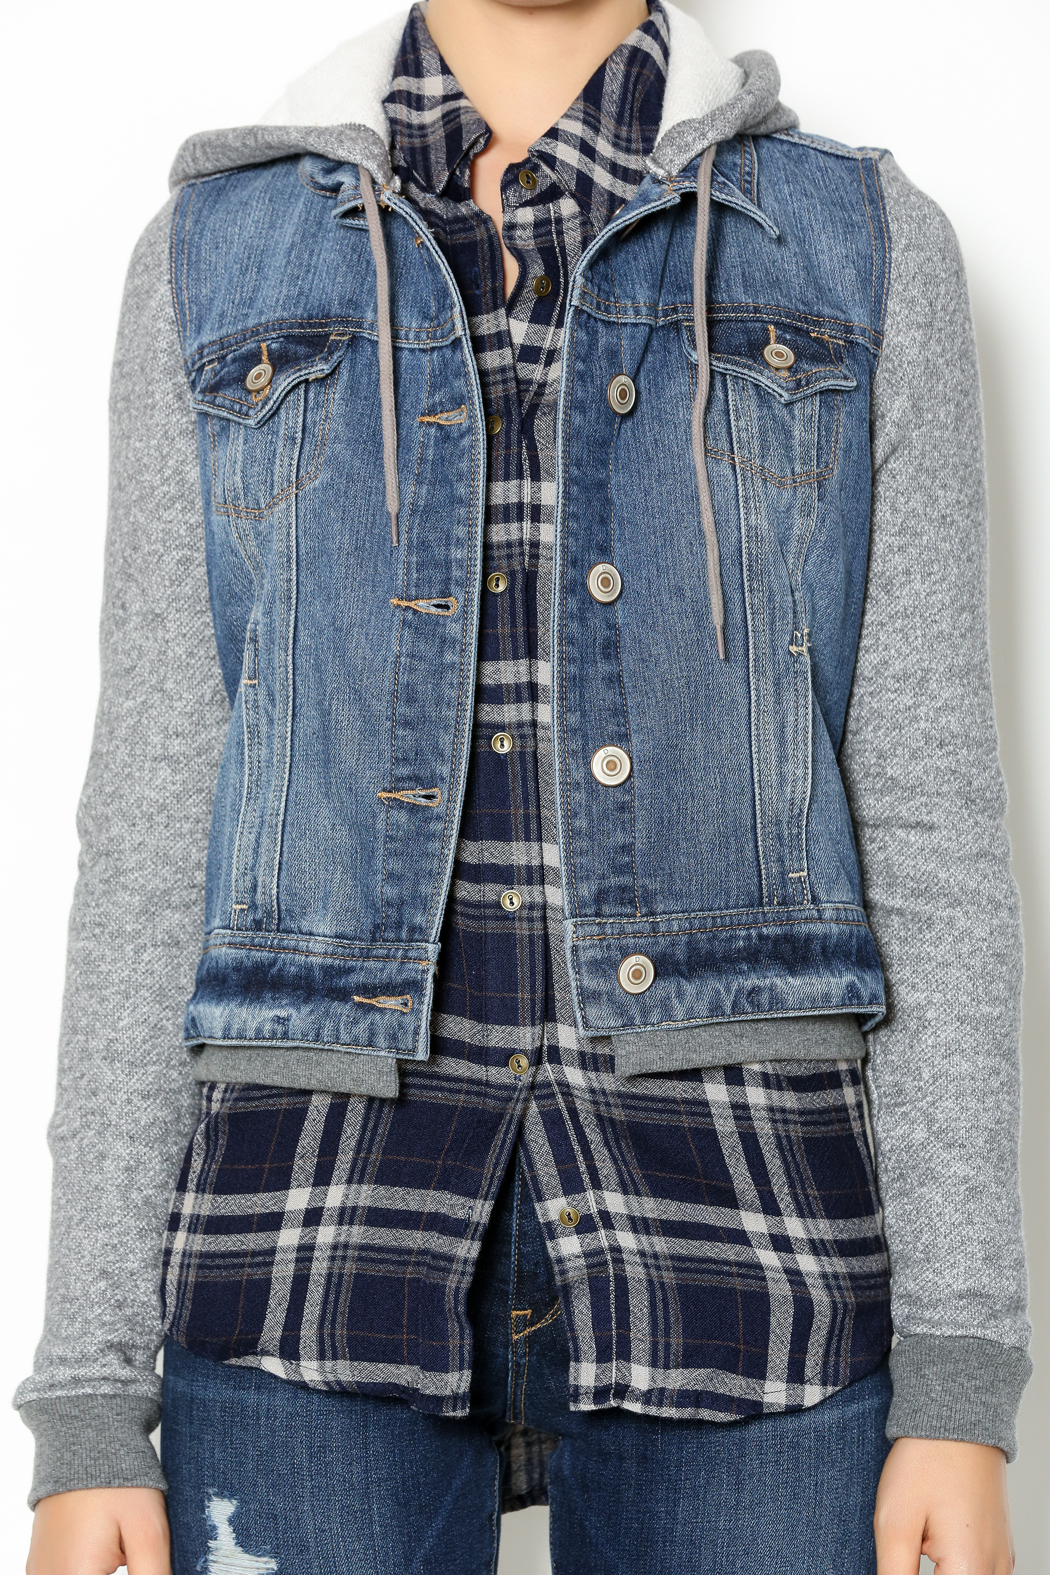 Dex Hooded Denim Jacket from Texas by The Closet Monster — Shoptiques